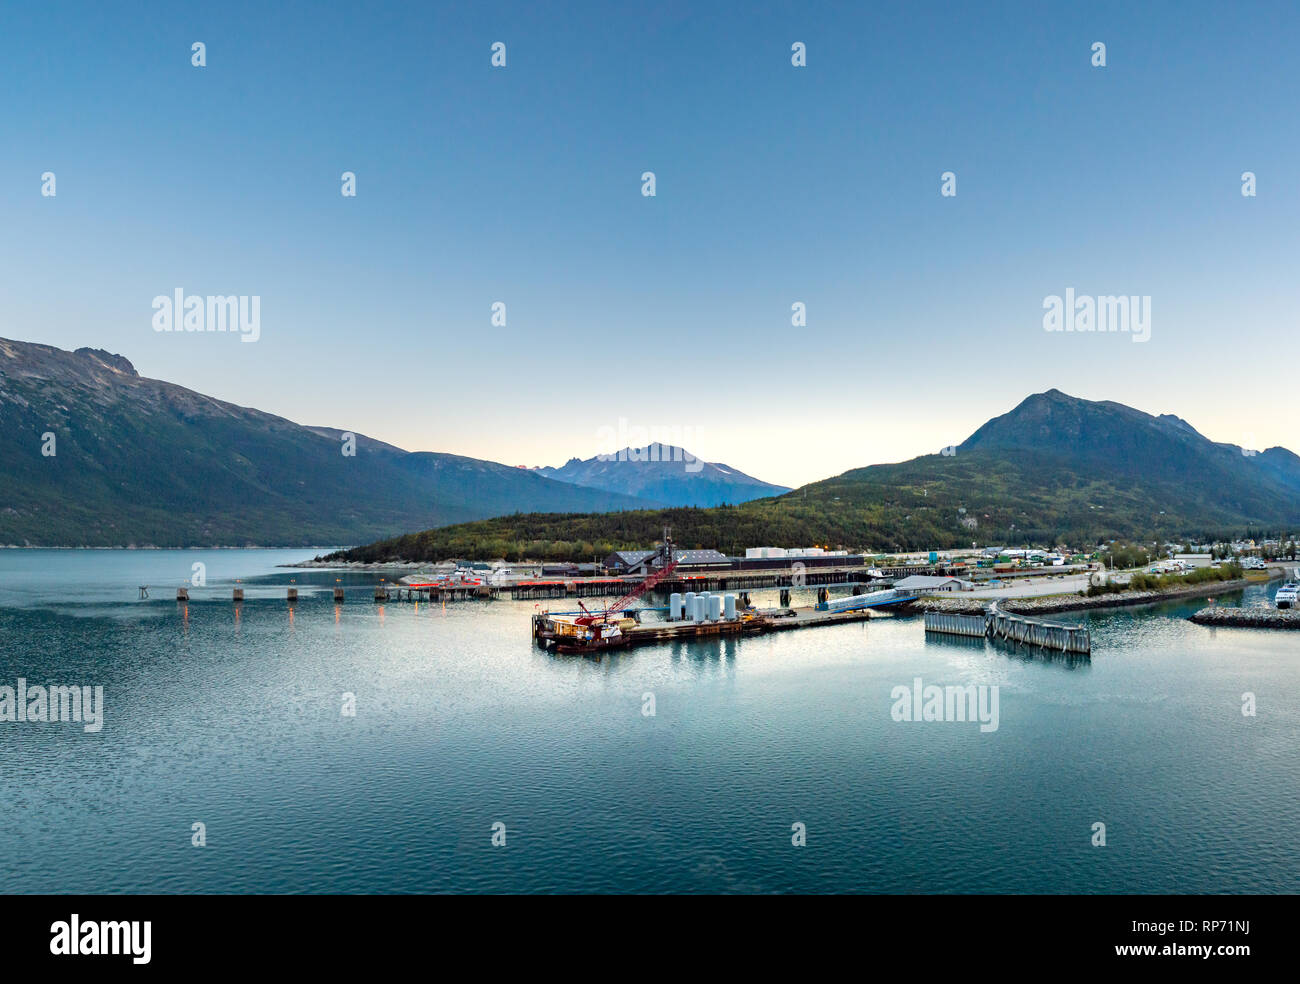 September 15, 2018 - Skagway, AK: Small boat harbour and industrial docks at sunrise, looking Northwest from cruise ship terminal in port. - Stock Image